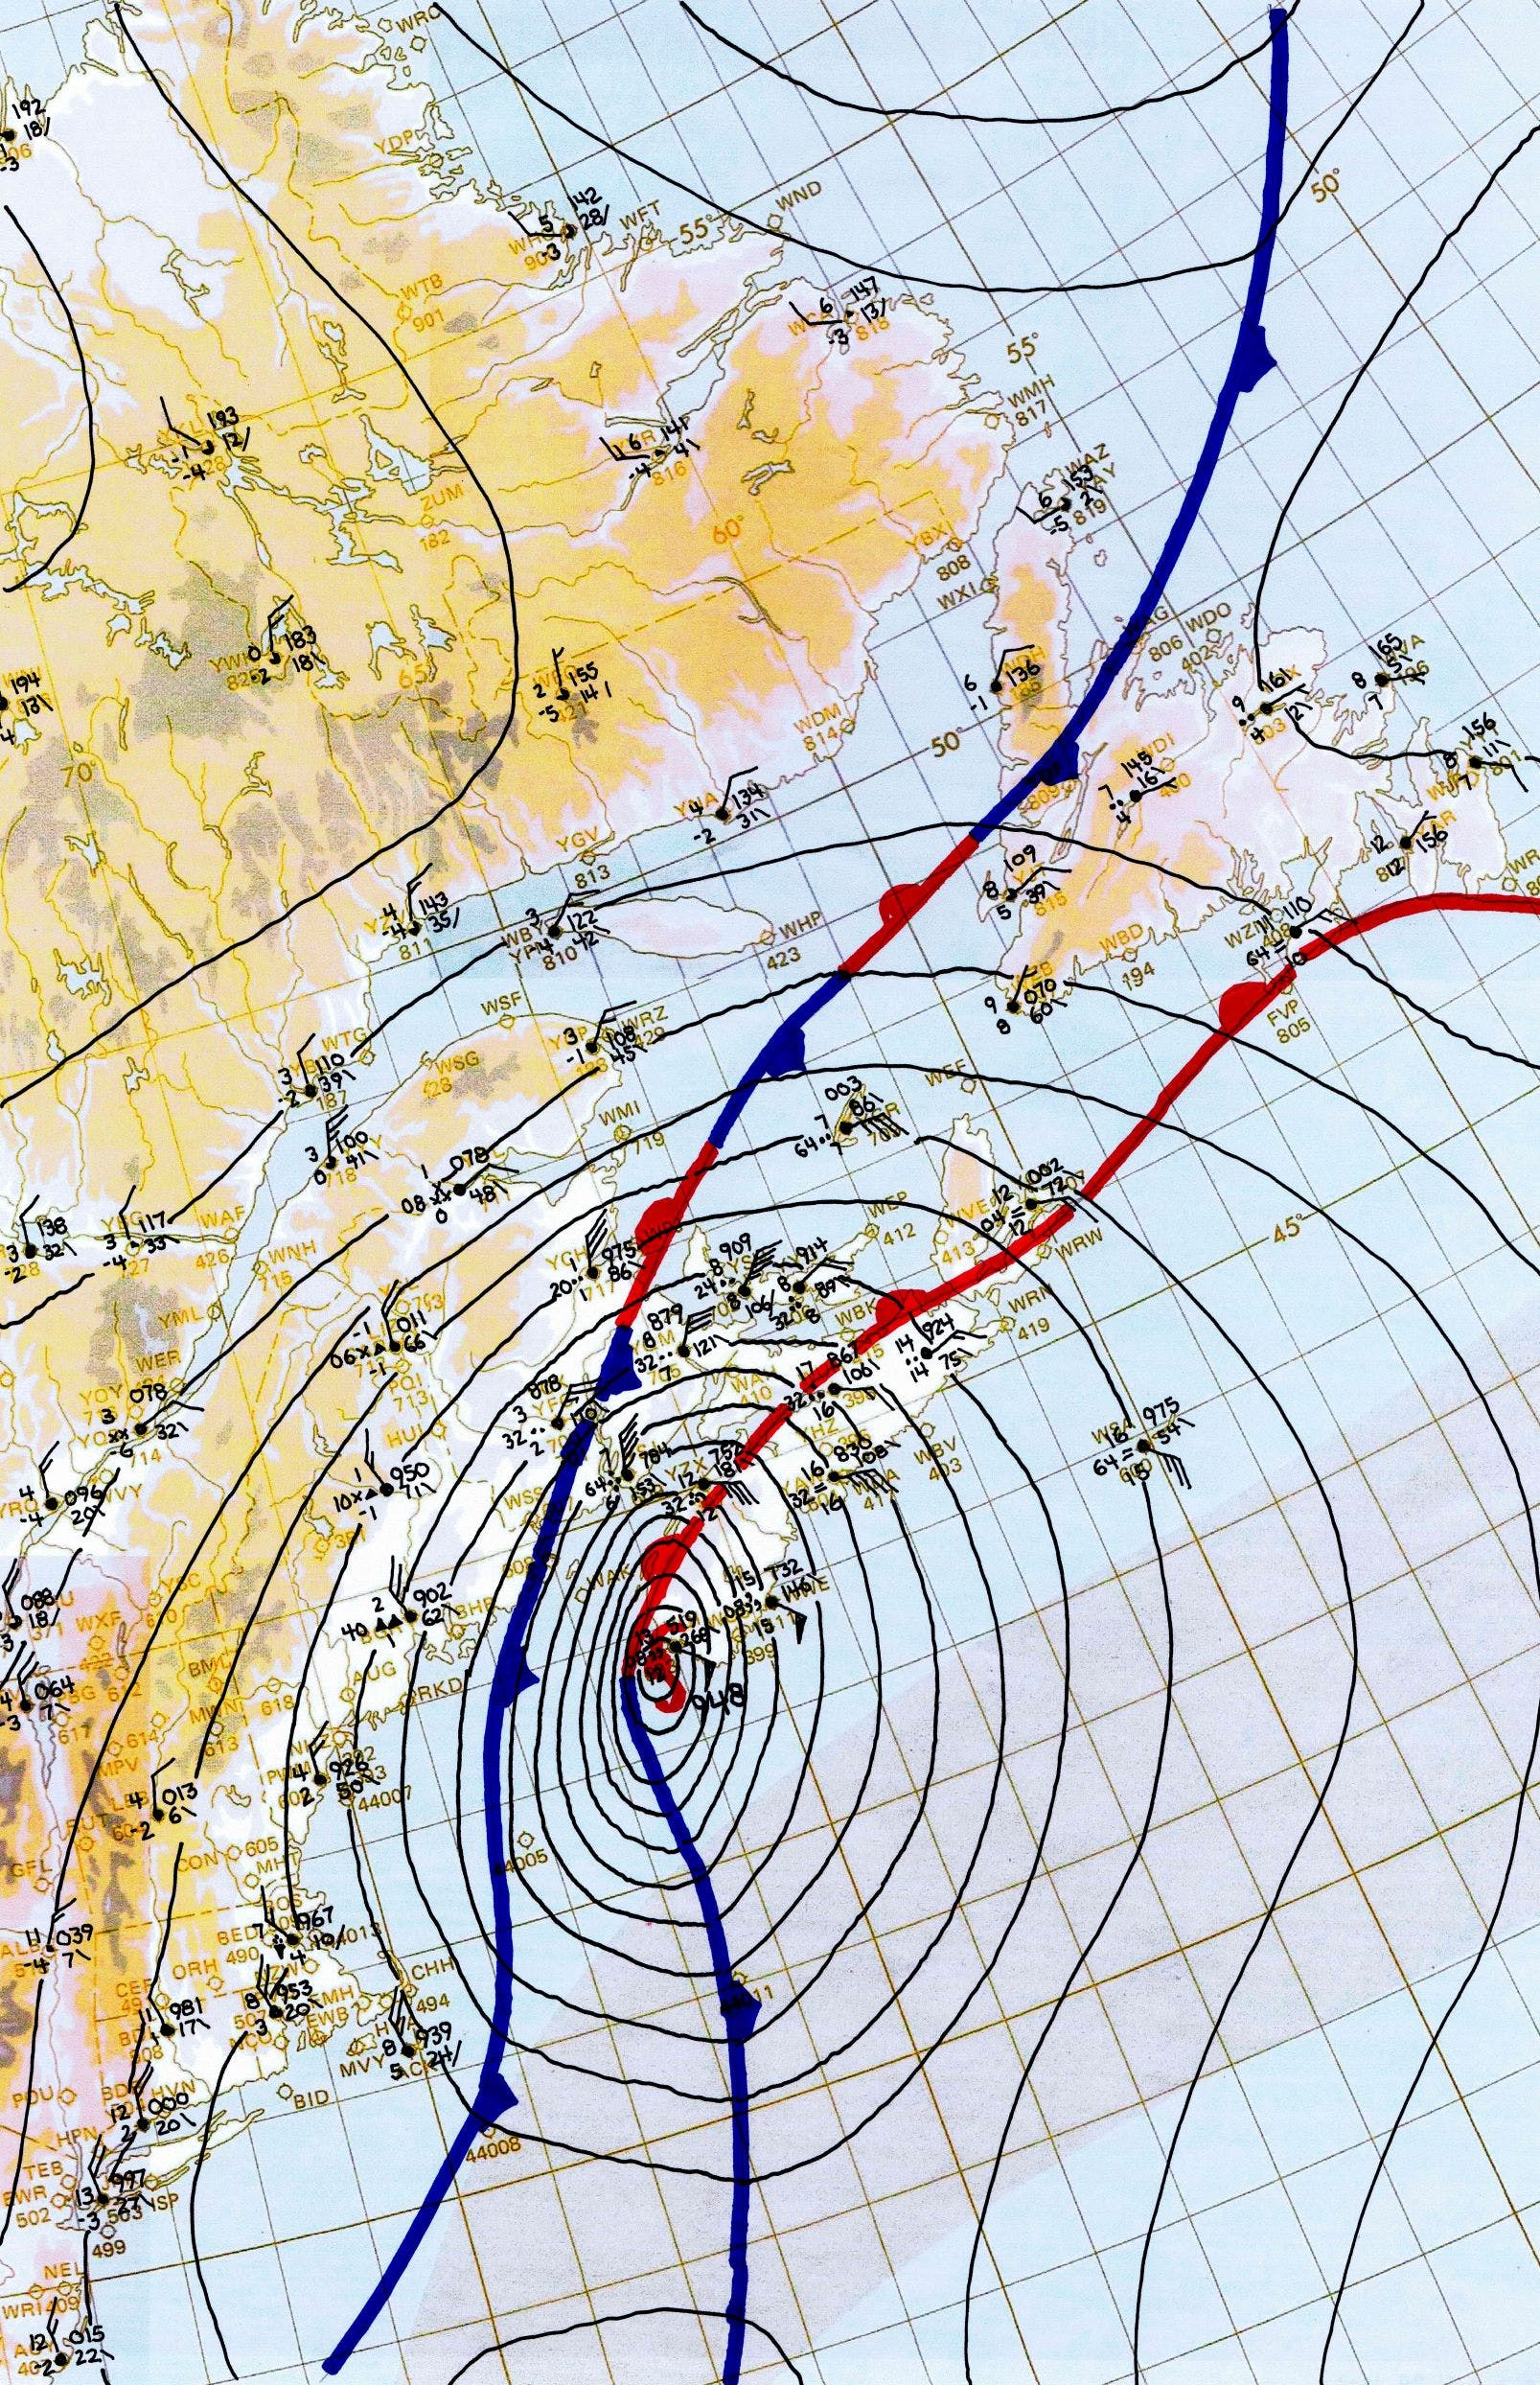 Surface analysis, 18Z October 29th 1963. Hurricane Ginnystruck SW Nova Scotia as a strong Category2 hurricane, the strongest to ever make landfall in Canada in recorded history.